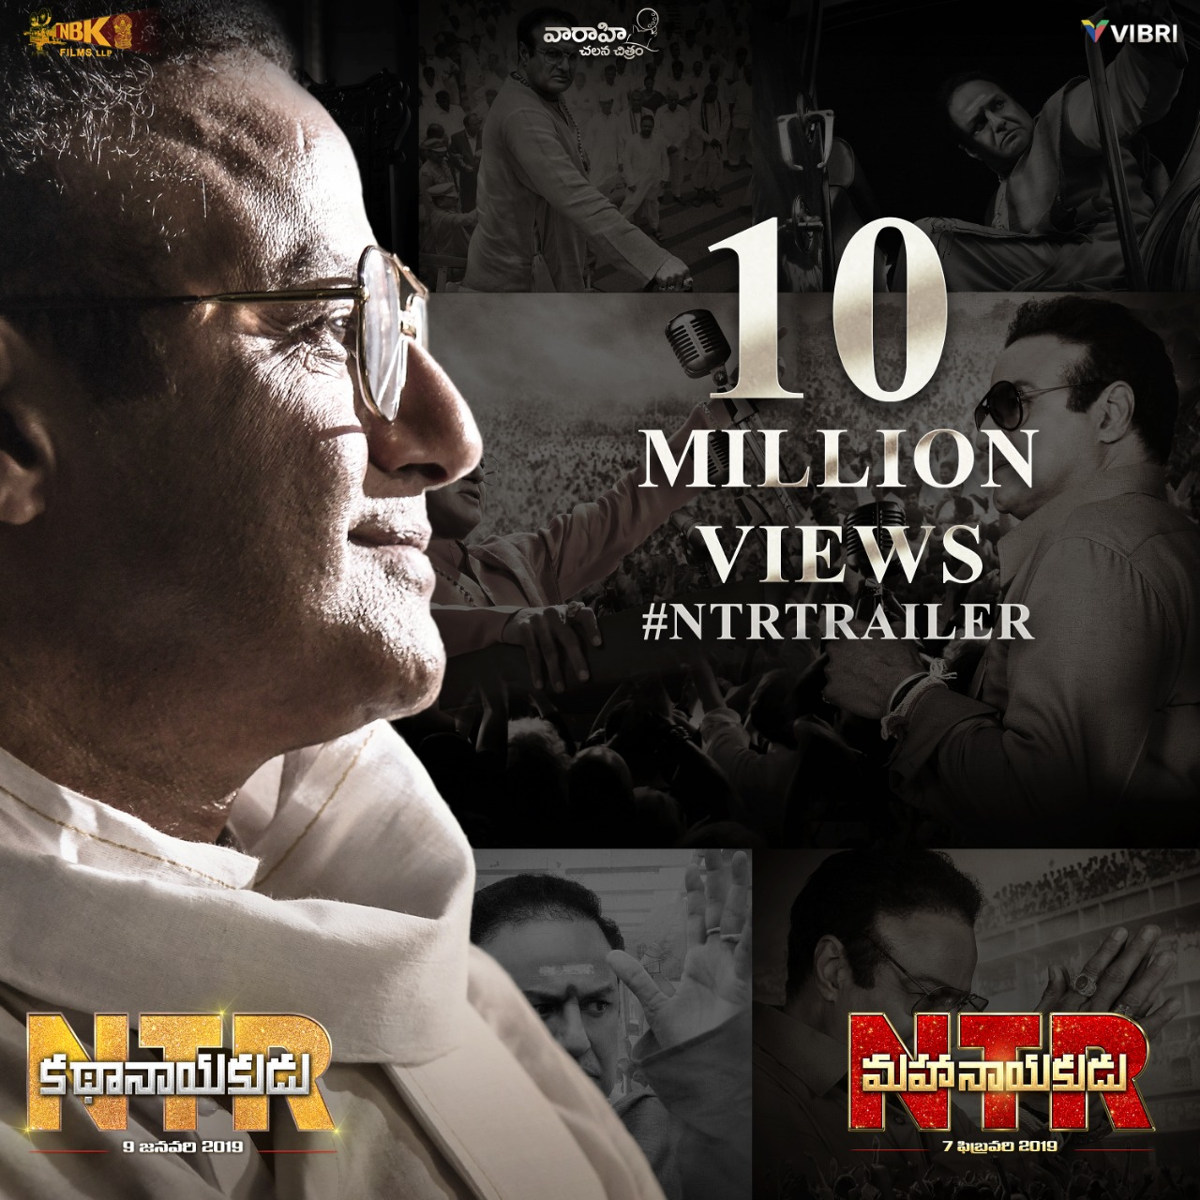 NTR Biopic Trailer crossed 10 Million views